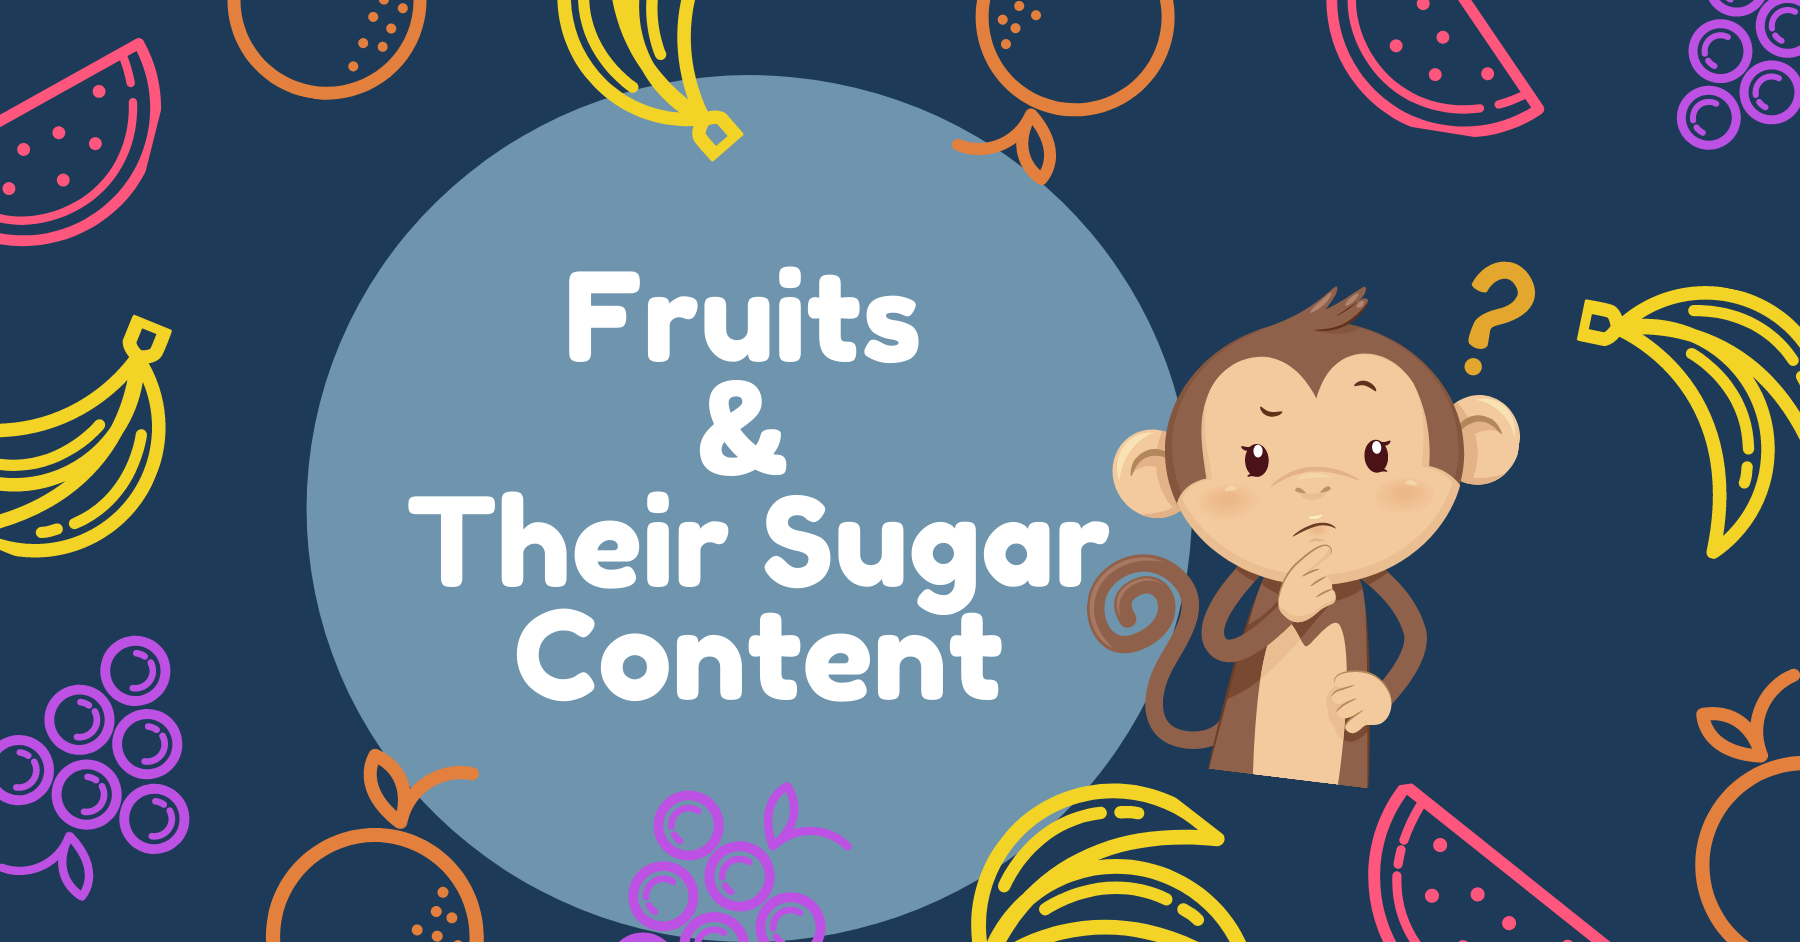 Fruit Sugar, Fruit with sugar content, , is fruit sugar bad for you, fruit high sugar